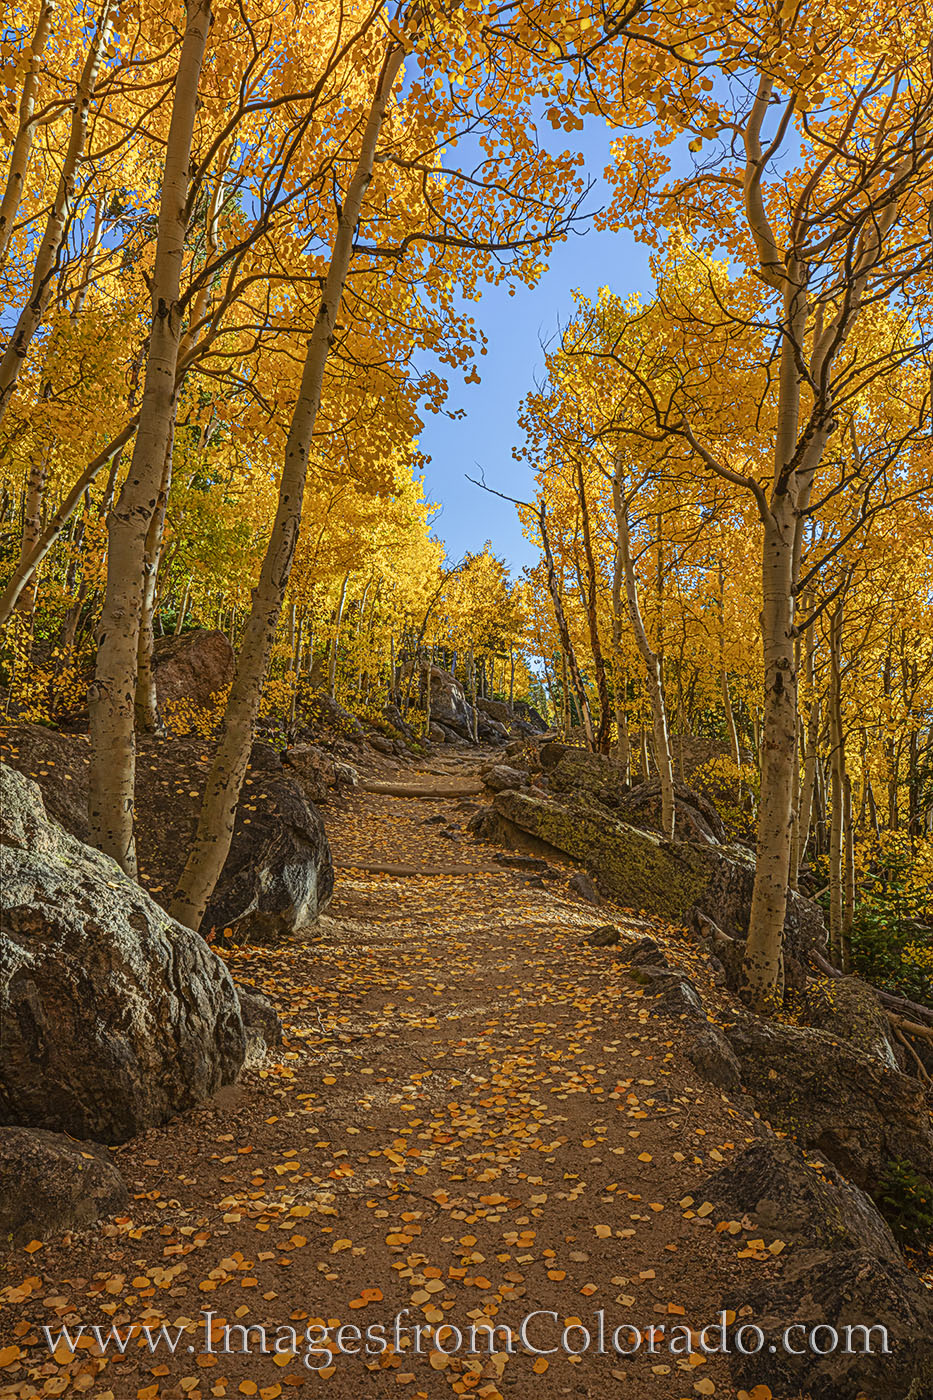 rocky mountain national park, estes park, bear lake, aspen, aspen leaves, fall colors, autumn colors, trail, path, morning, october, photo